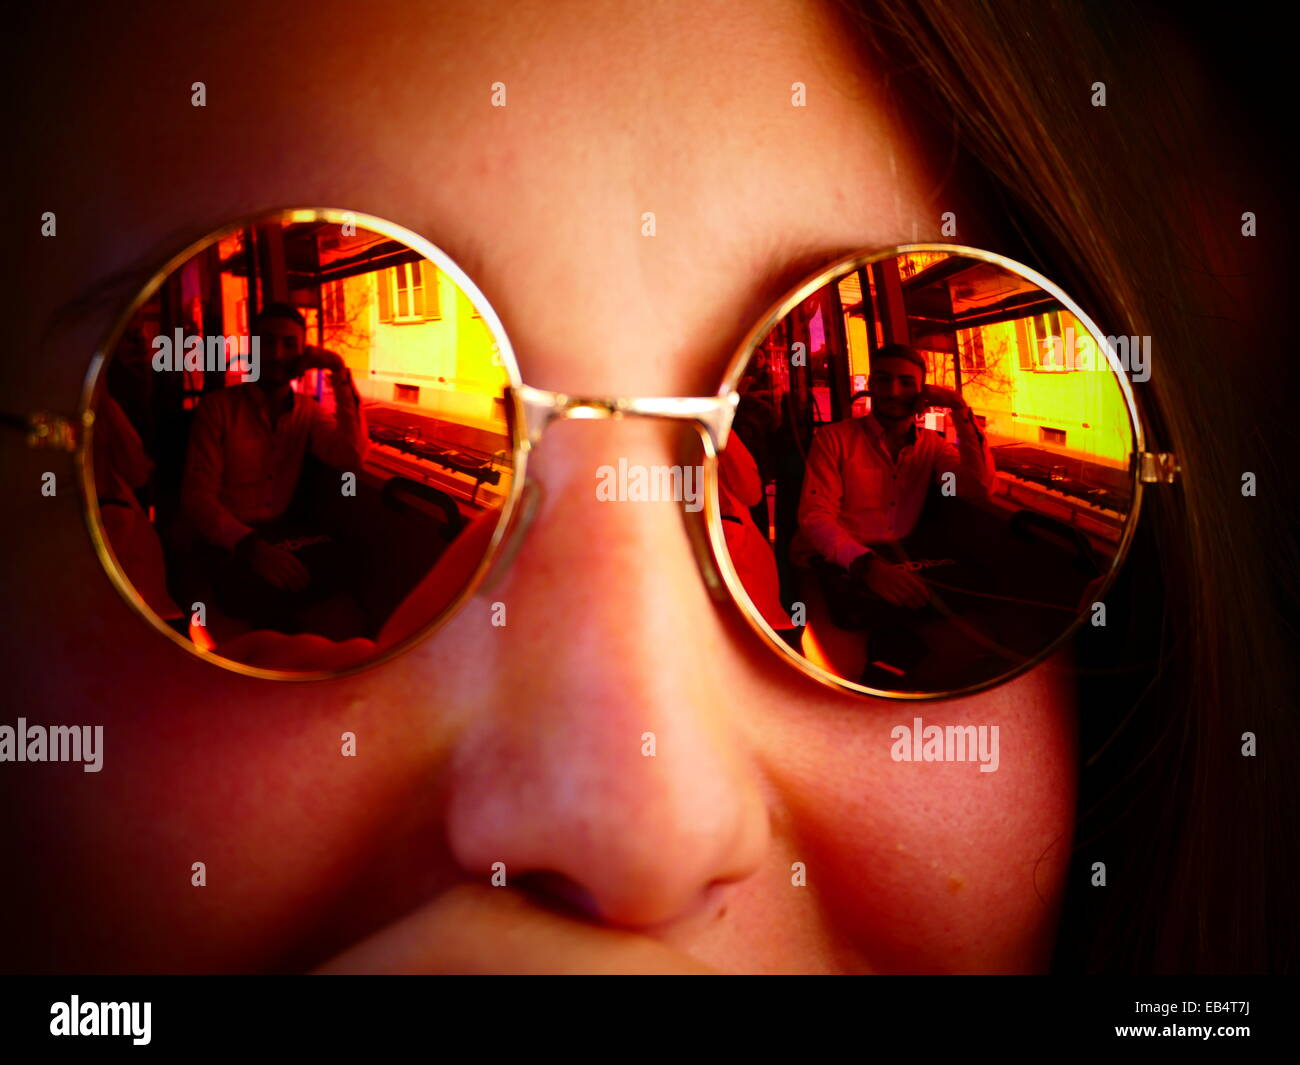 A young girl with reflective sunglasses - Stock Image